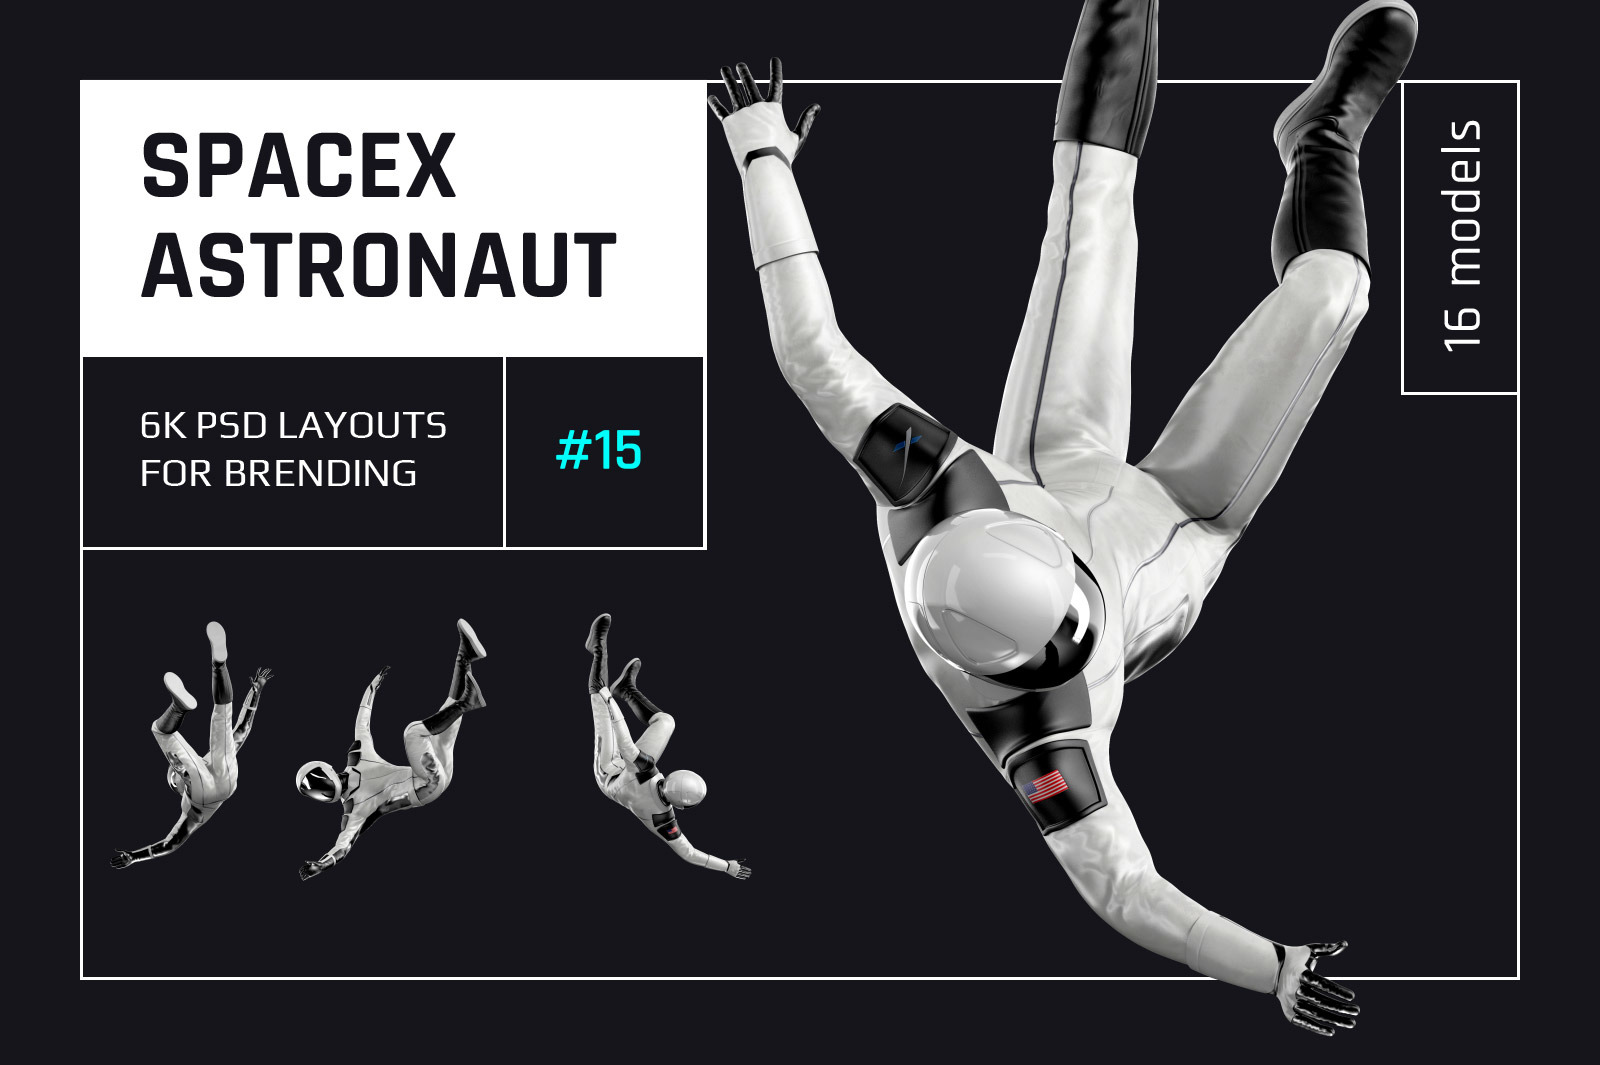 PSD Mockup 3D model SpaceX Astronaut #15